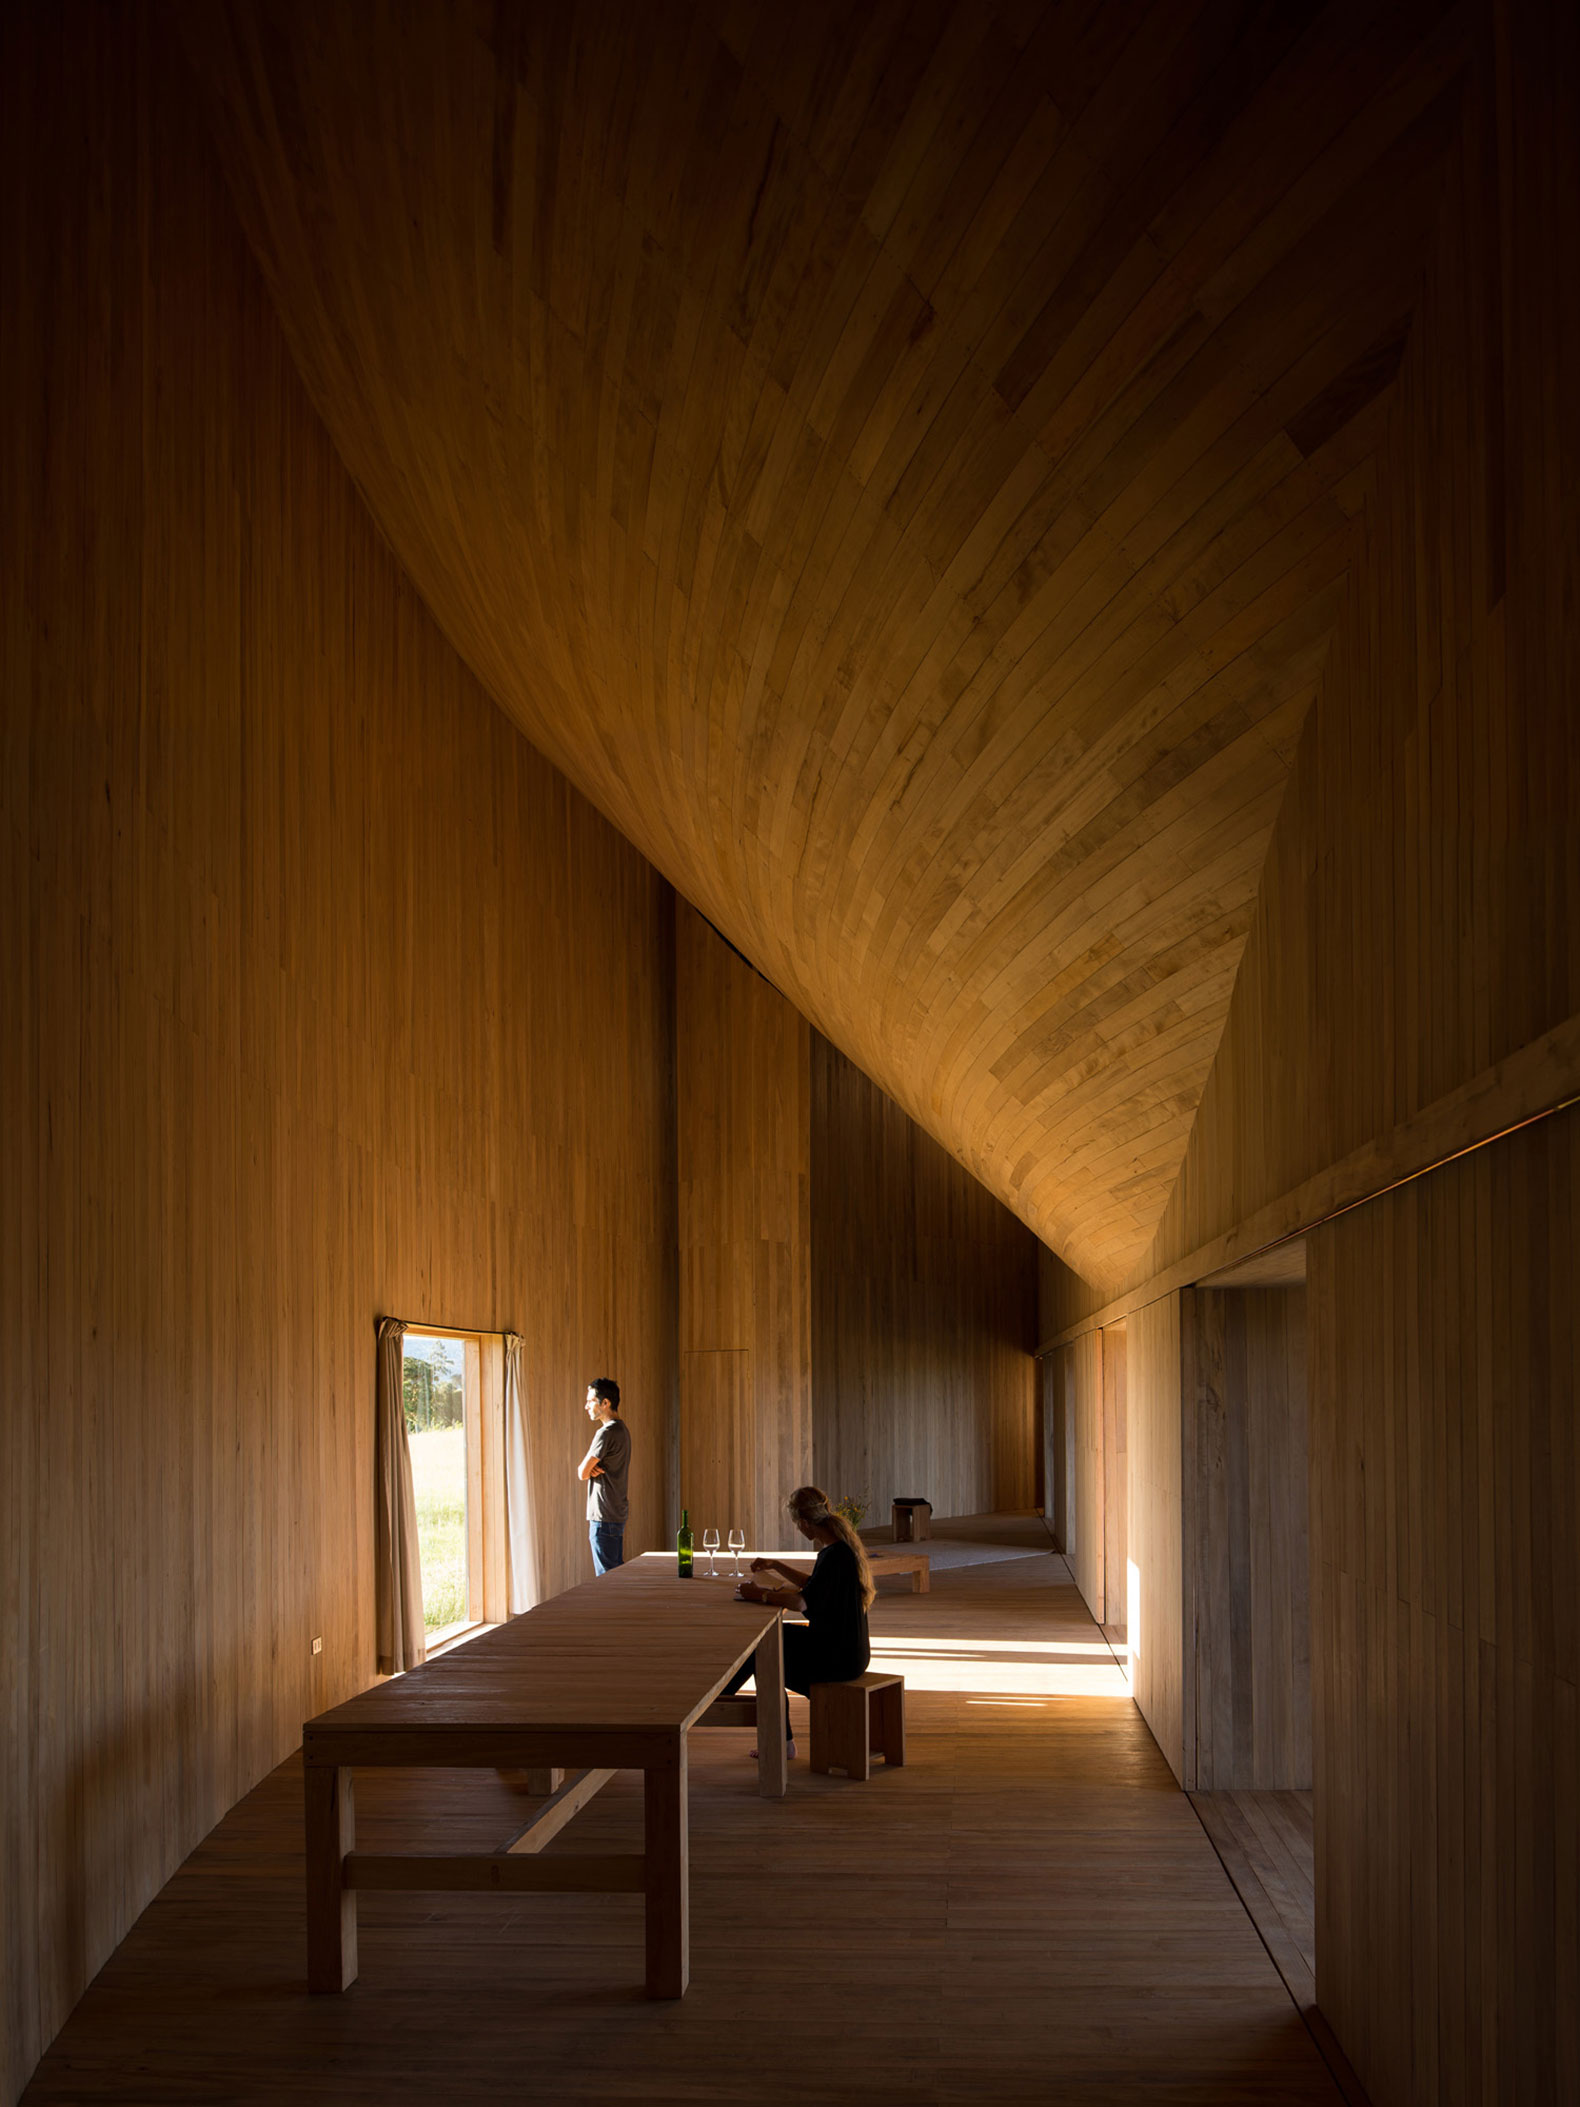 Living in the curve. Rode House by Pezo von Ellrichshausen. Photograph by Pezo von Ellrichshausen